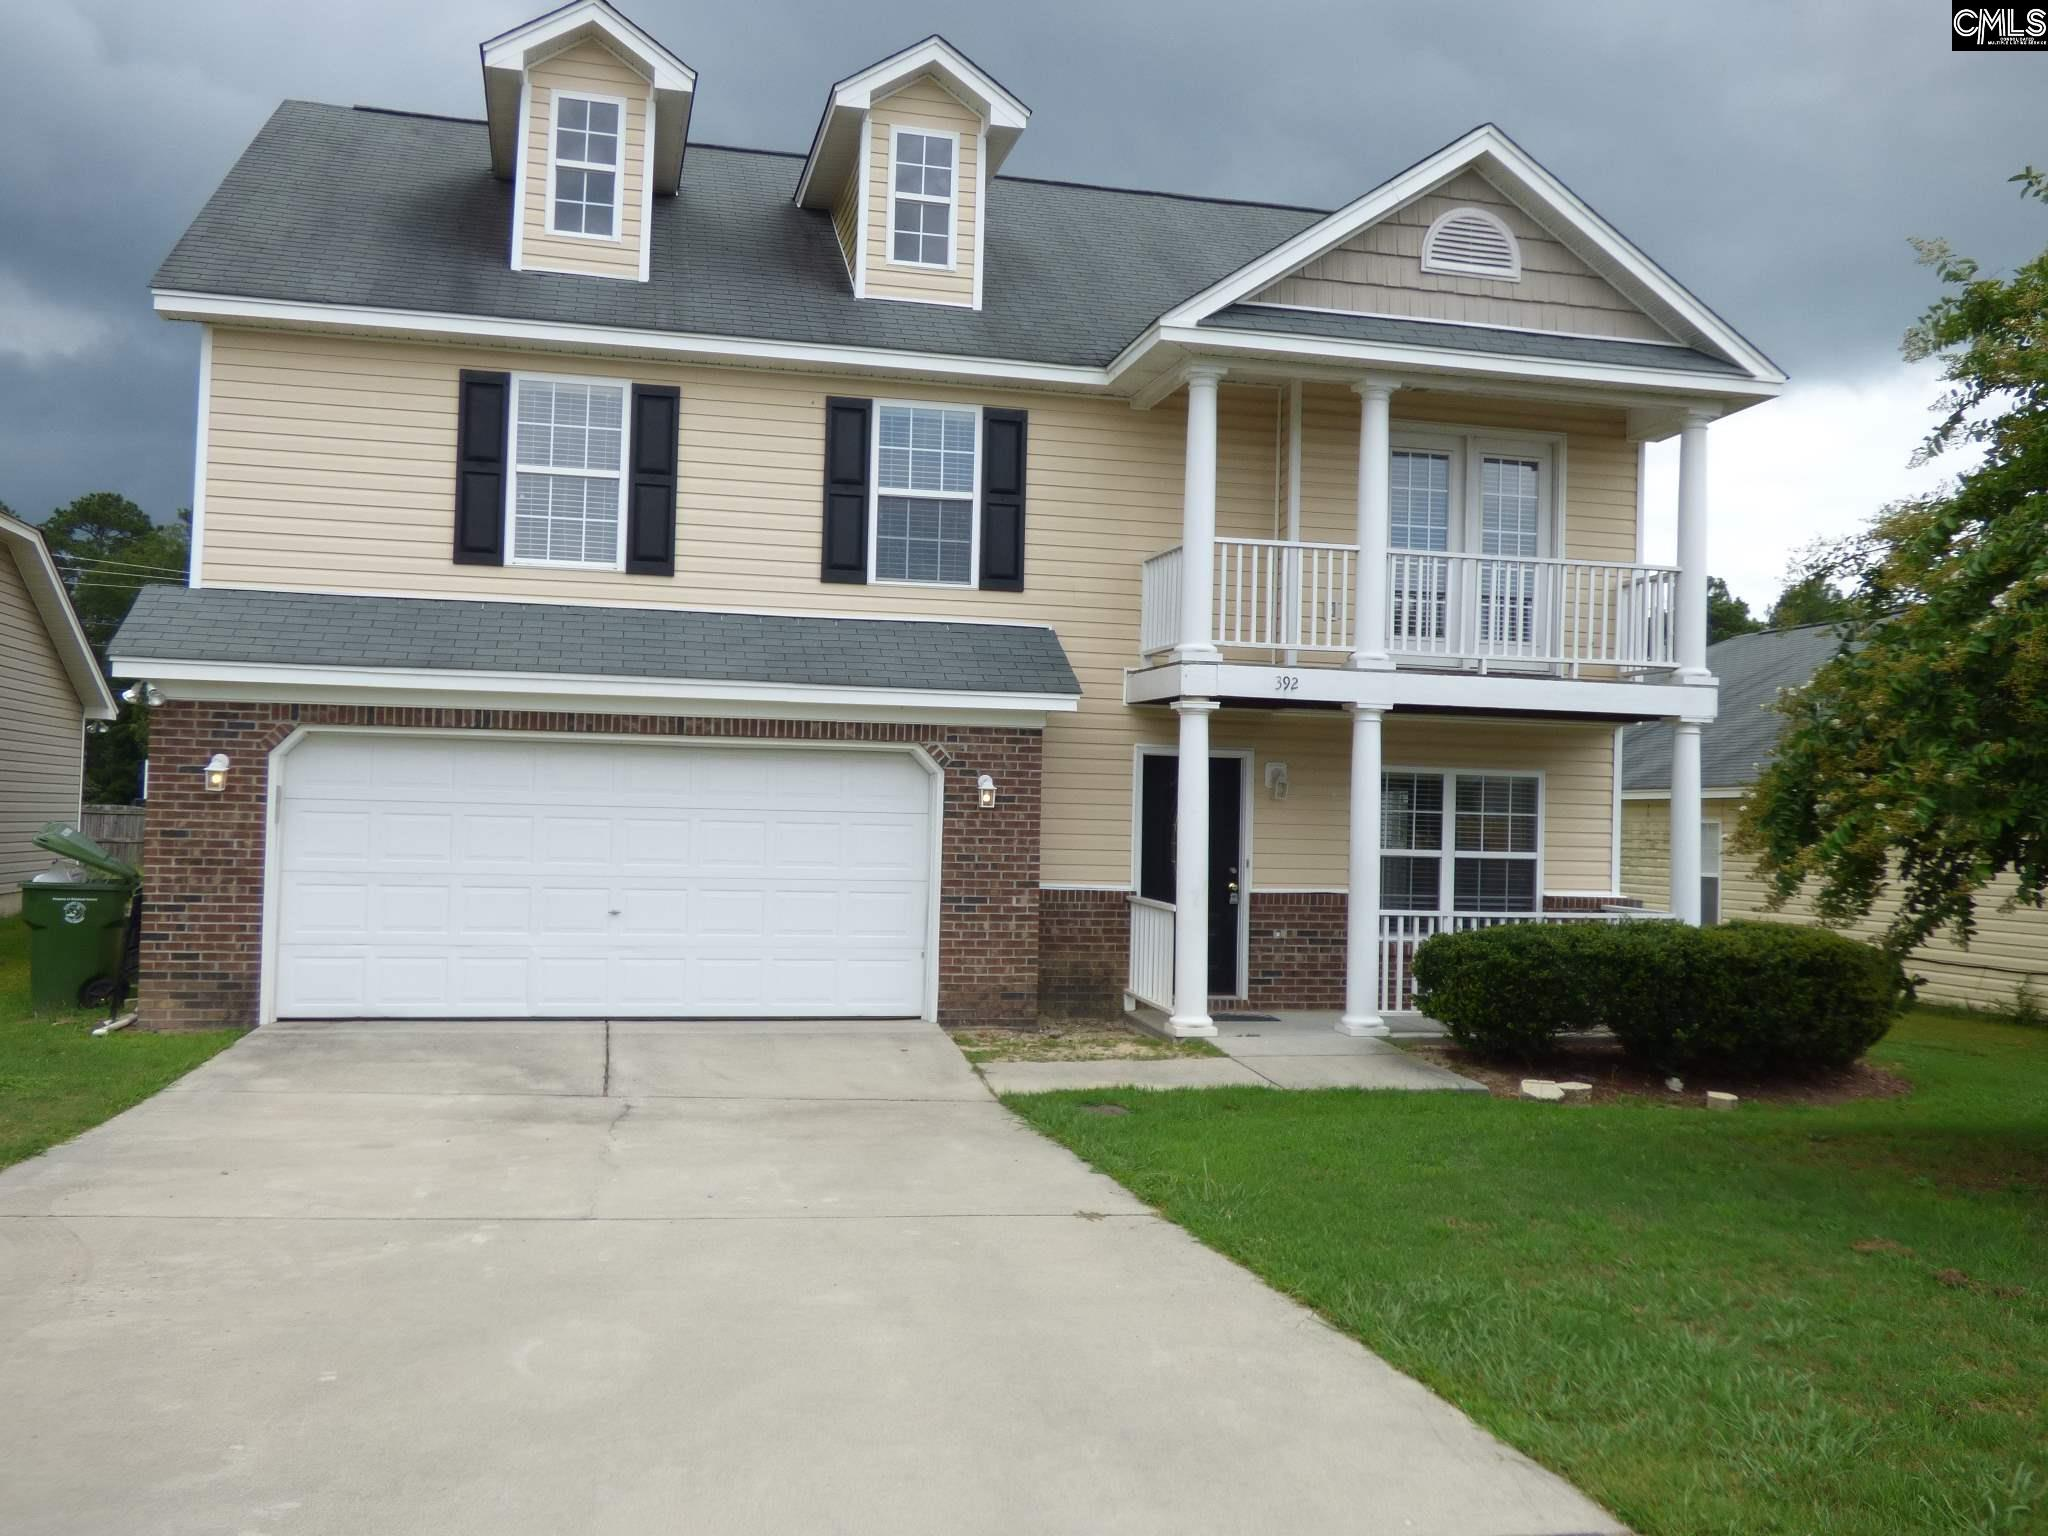 392 Fox Squirrel Columbia, SC 29209